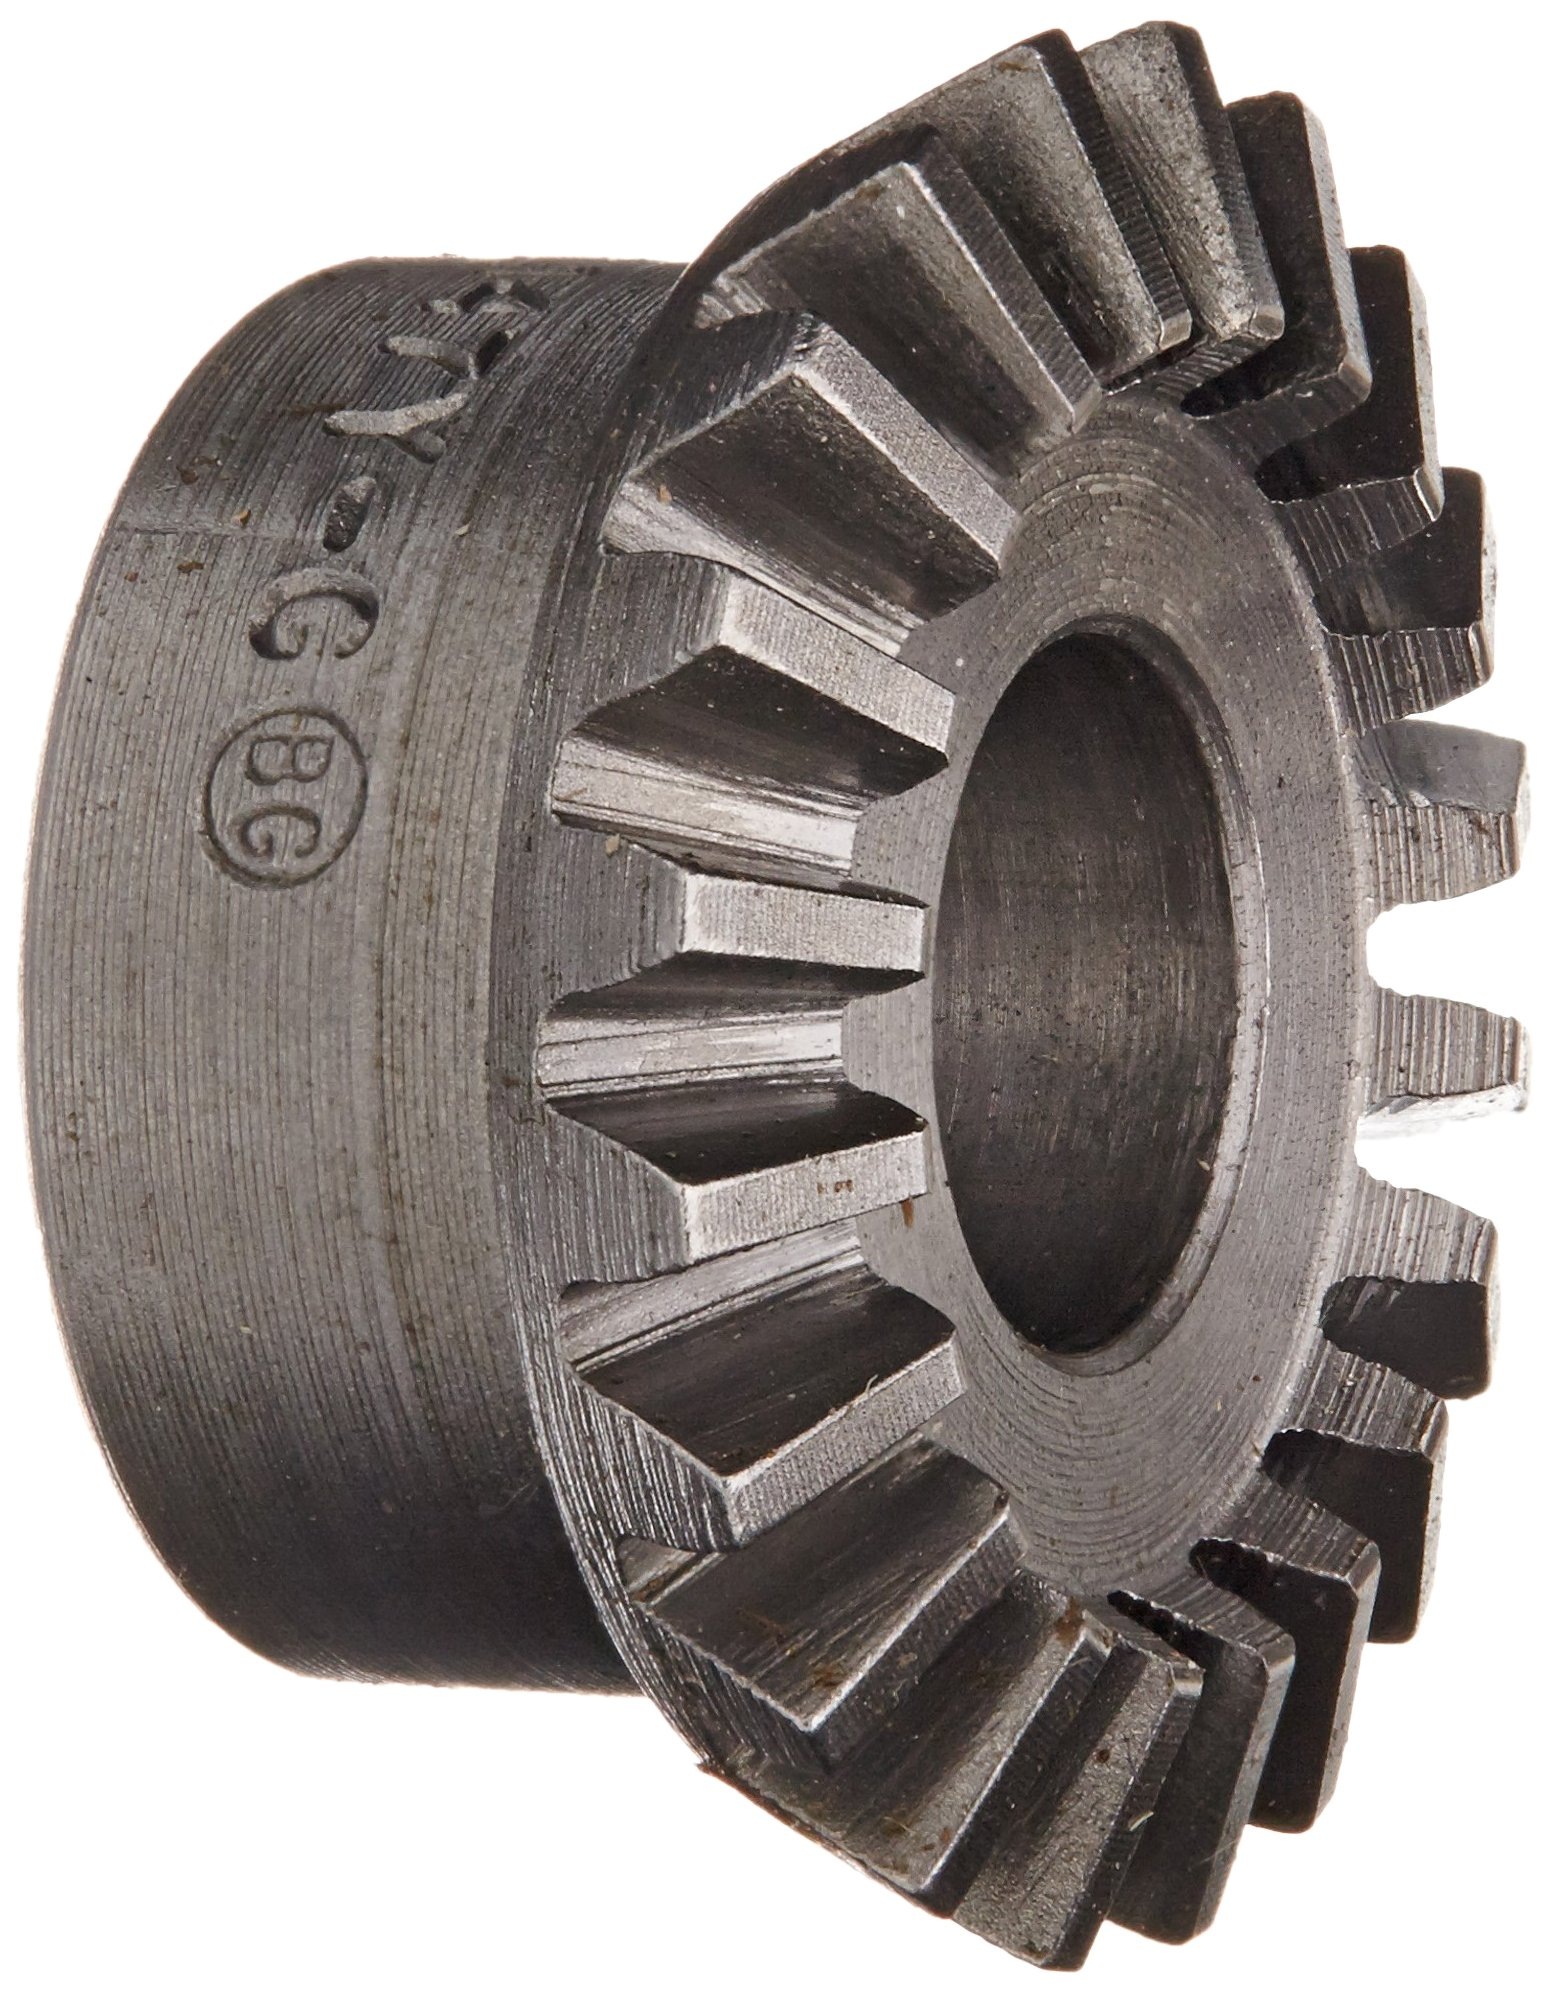 "Boston Gear L147Y-G Bevel Gear, 2:1 Ratio, 0.375"" Bore, 20 Pitch, 20 Teeth, 20 Degree Pressure Angle, Straight Bevel, Steel"